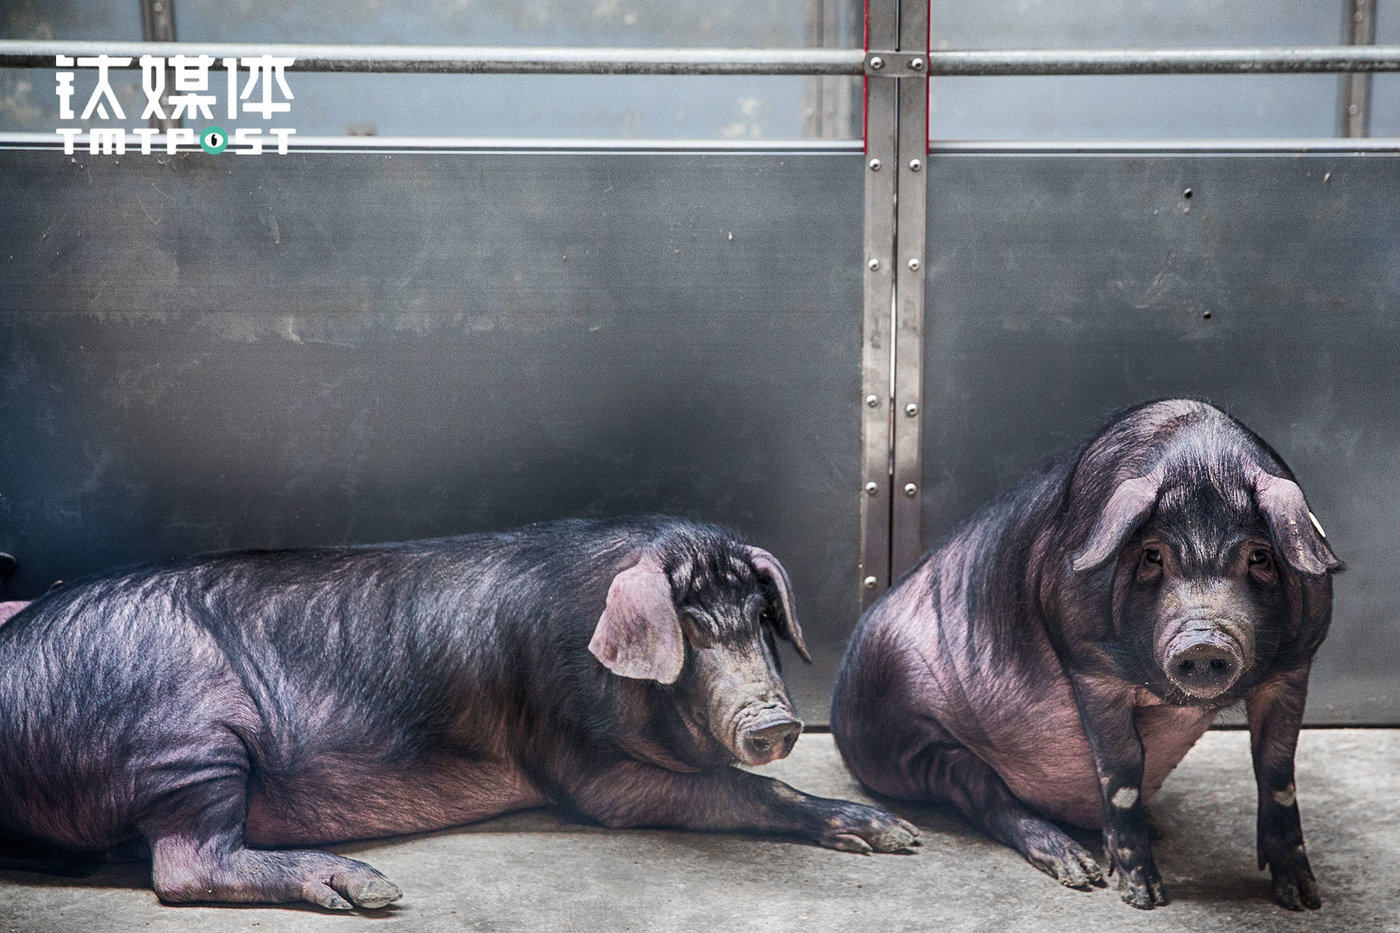 """Black pigs inside Weiyang pig farm. In traditional cultivation farms, it generally takes five to six months or shorter to raise a pig and put it out in the market. But pigs at Weiyang take ten months. """"Traditional cultivation business model serves the pig sales, and therefore the pig raisers only want to sell more pigs to their clients. In this case, they generally count on the days and hope to make more money in the cultivation cycle,"""" Weiyang's staff explained. NetEase directly provides pig products for its customers, and therefore it has to be responsible for the taste of the pork. Besides the pig breed and pig feed, the cultivation period is also crucial to the taste of the pigs."""